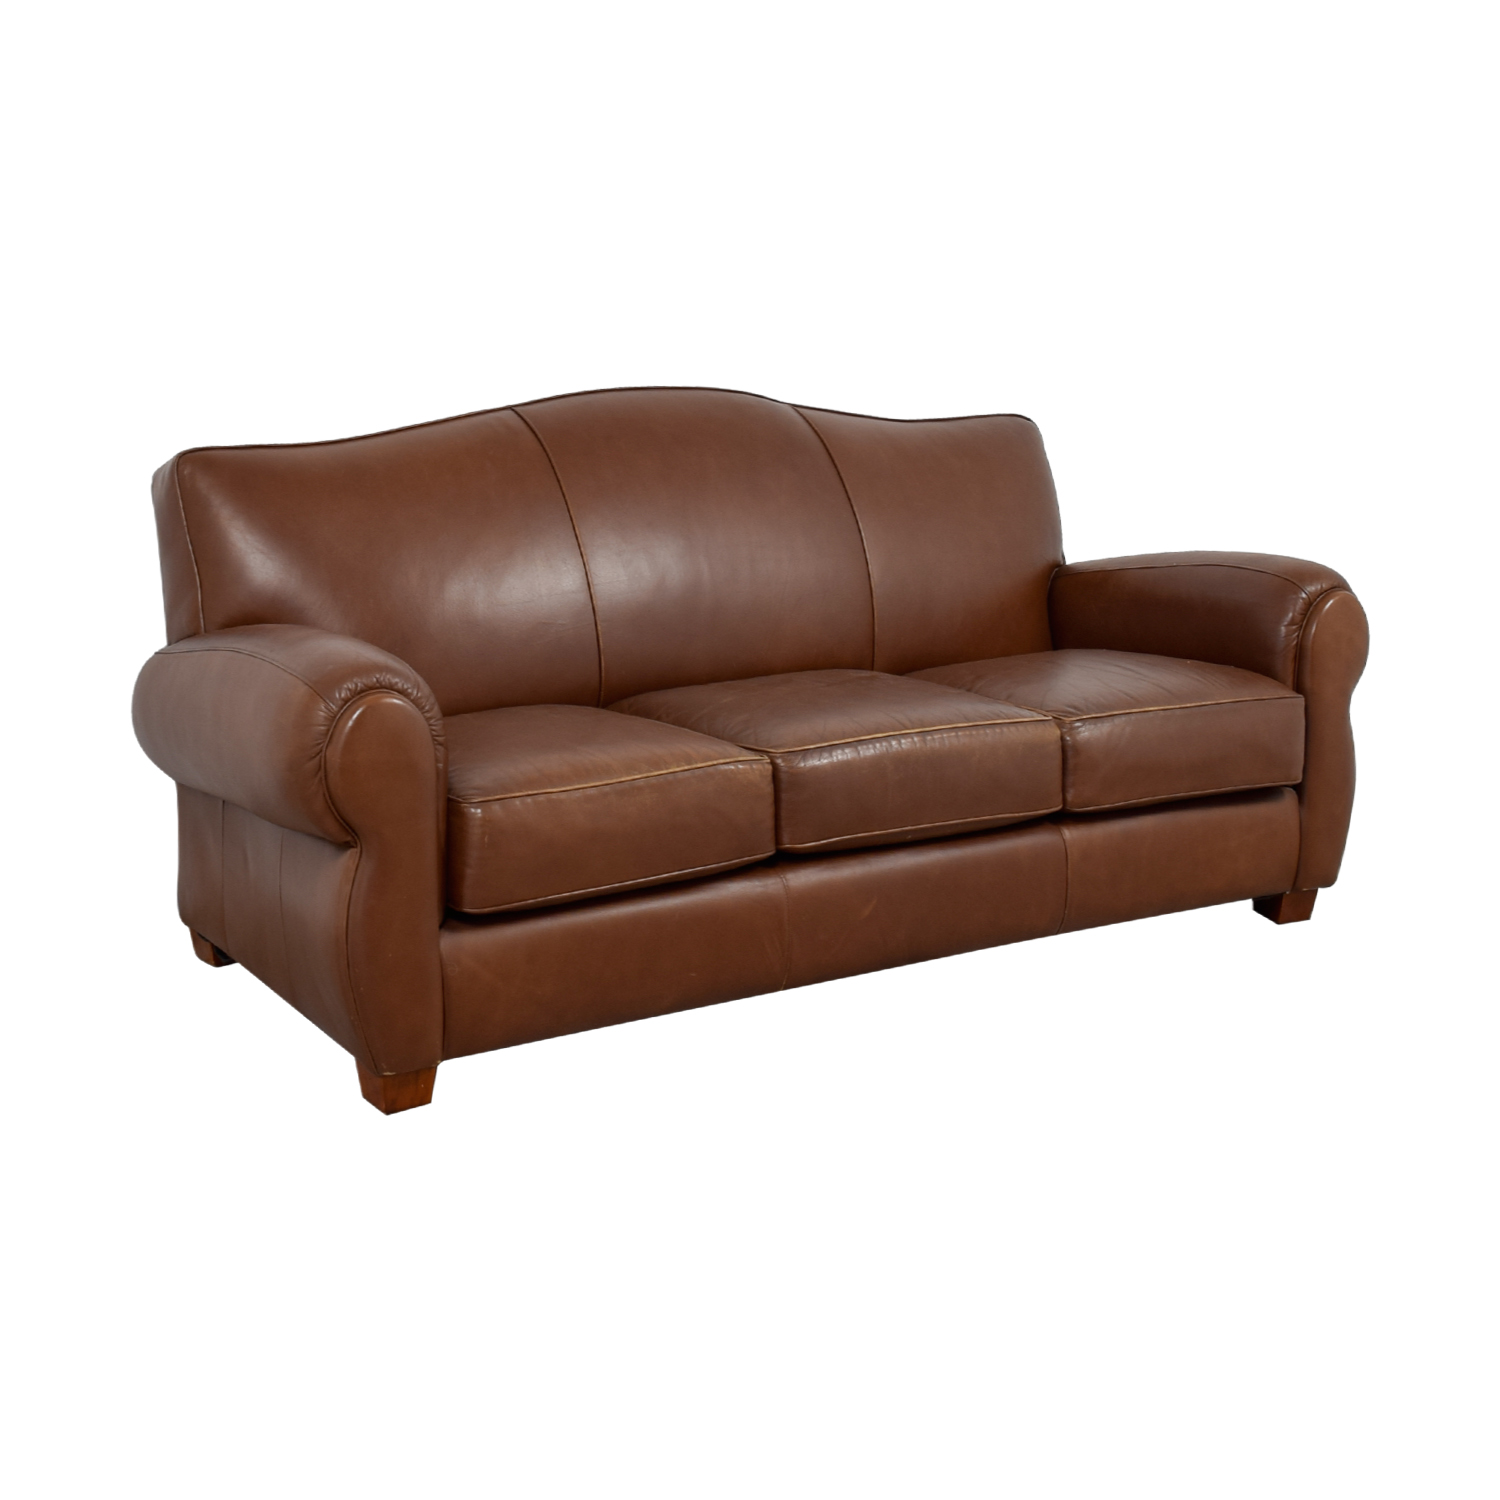 Cushions For Brown Leather Sofas 70 Off Thomasville Thomasville Brown Leather Three